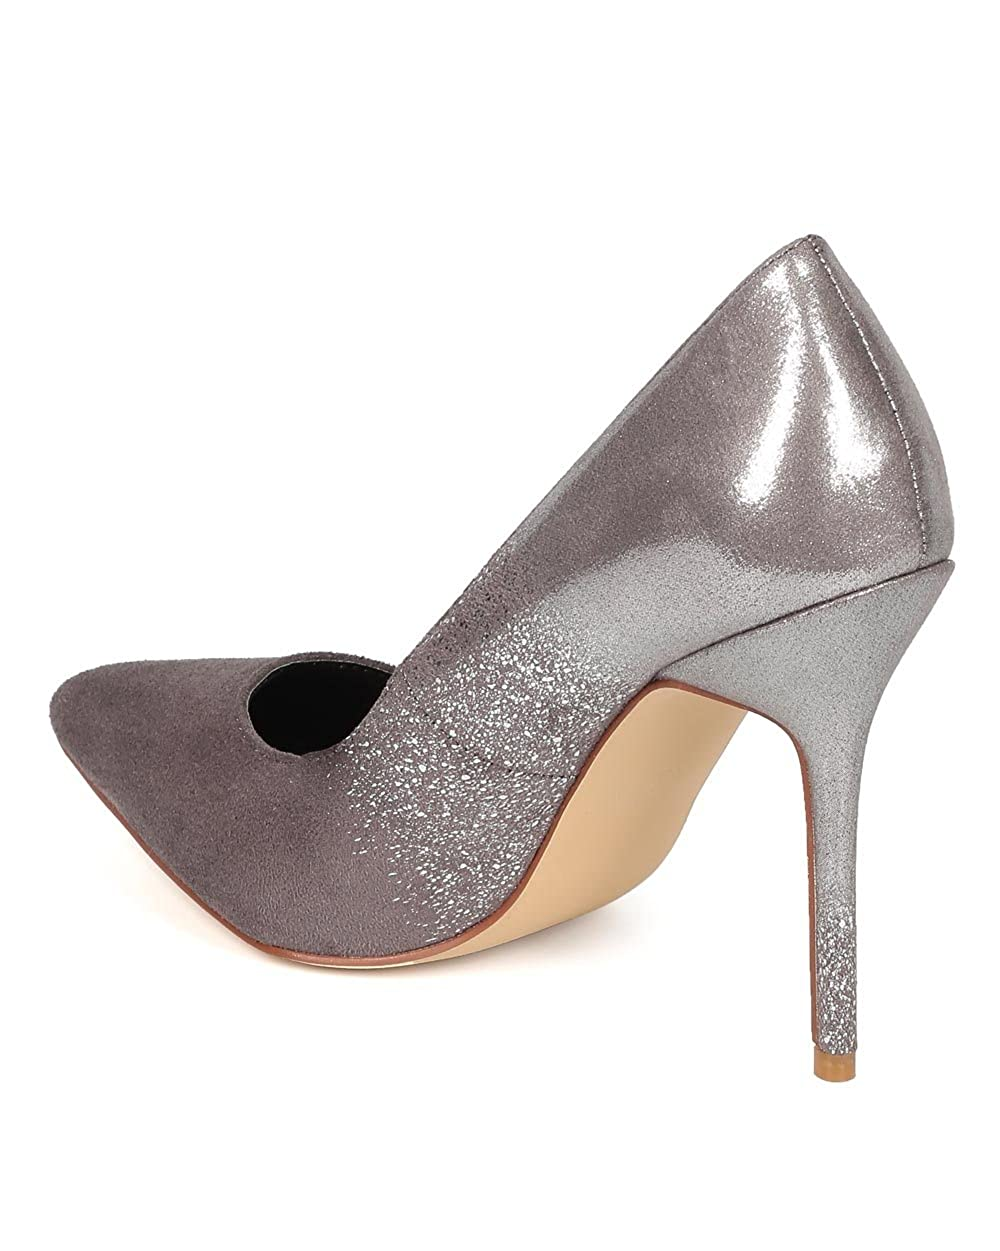 Women Suede Ombre Shimmer Pointy Toe Single Sole Stiletto Pump CF04 Grey Faux Suede